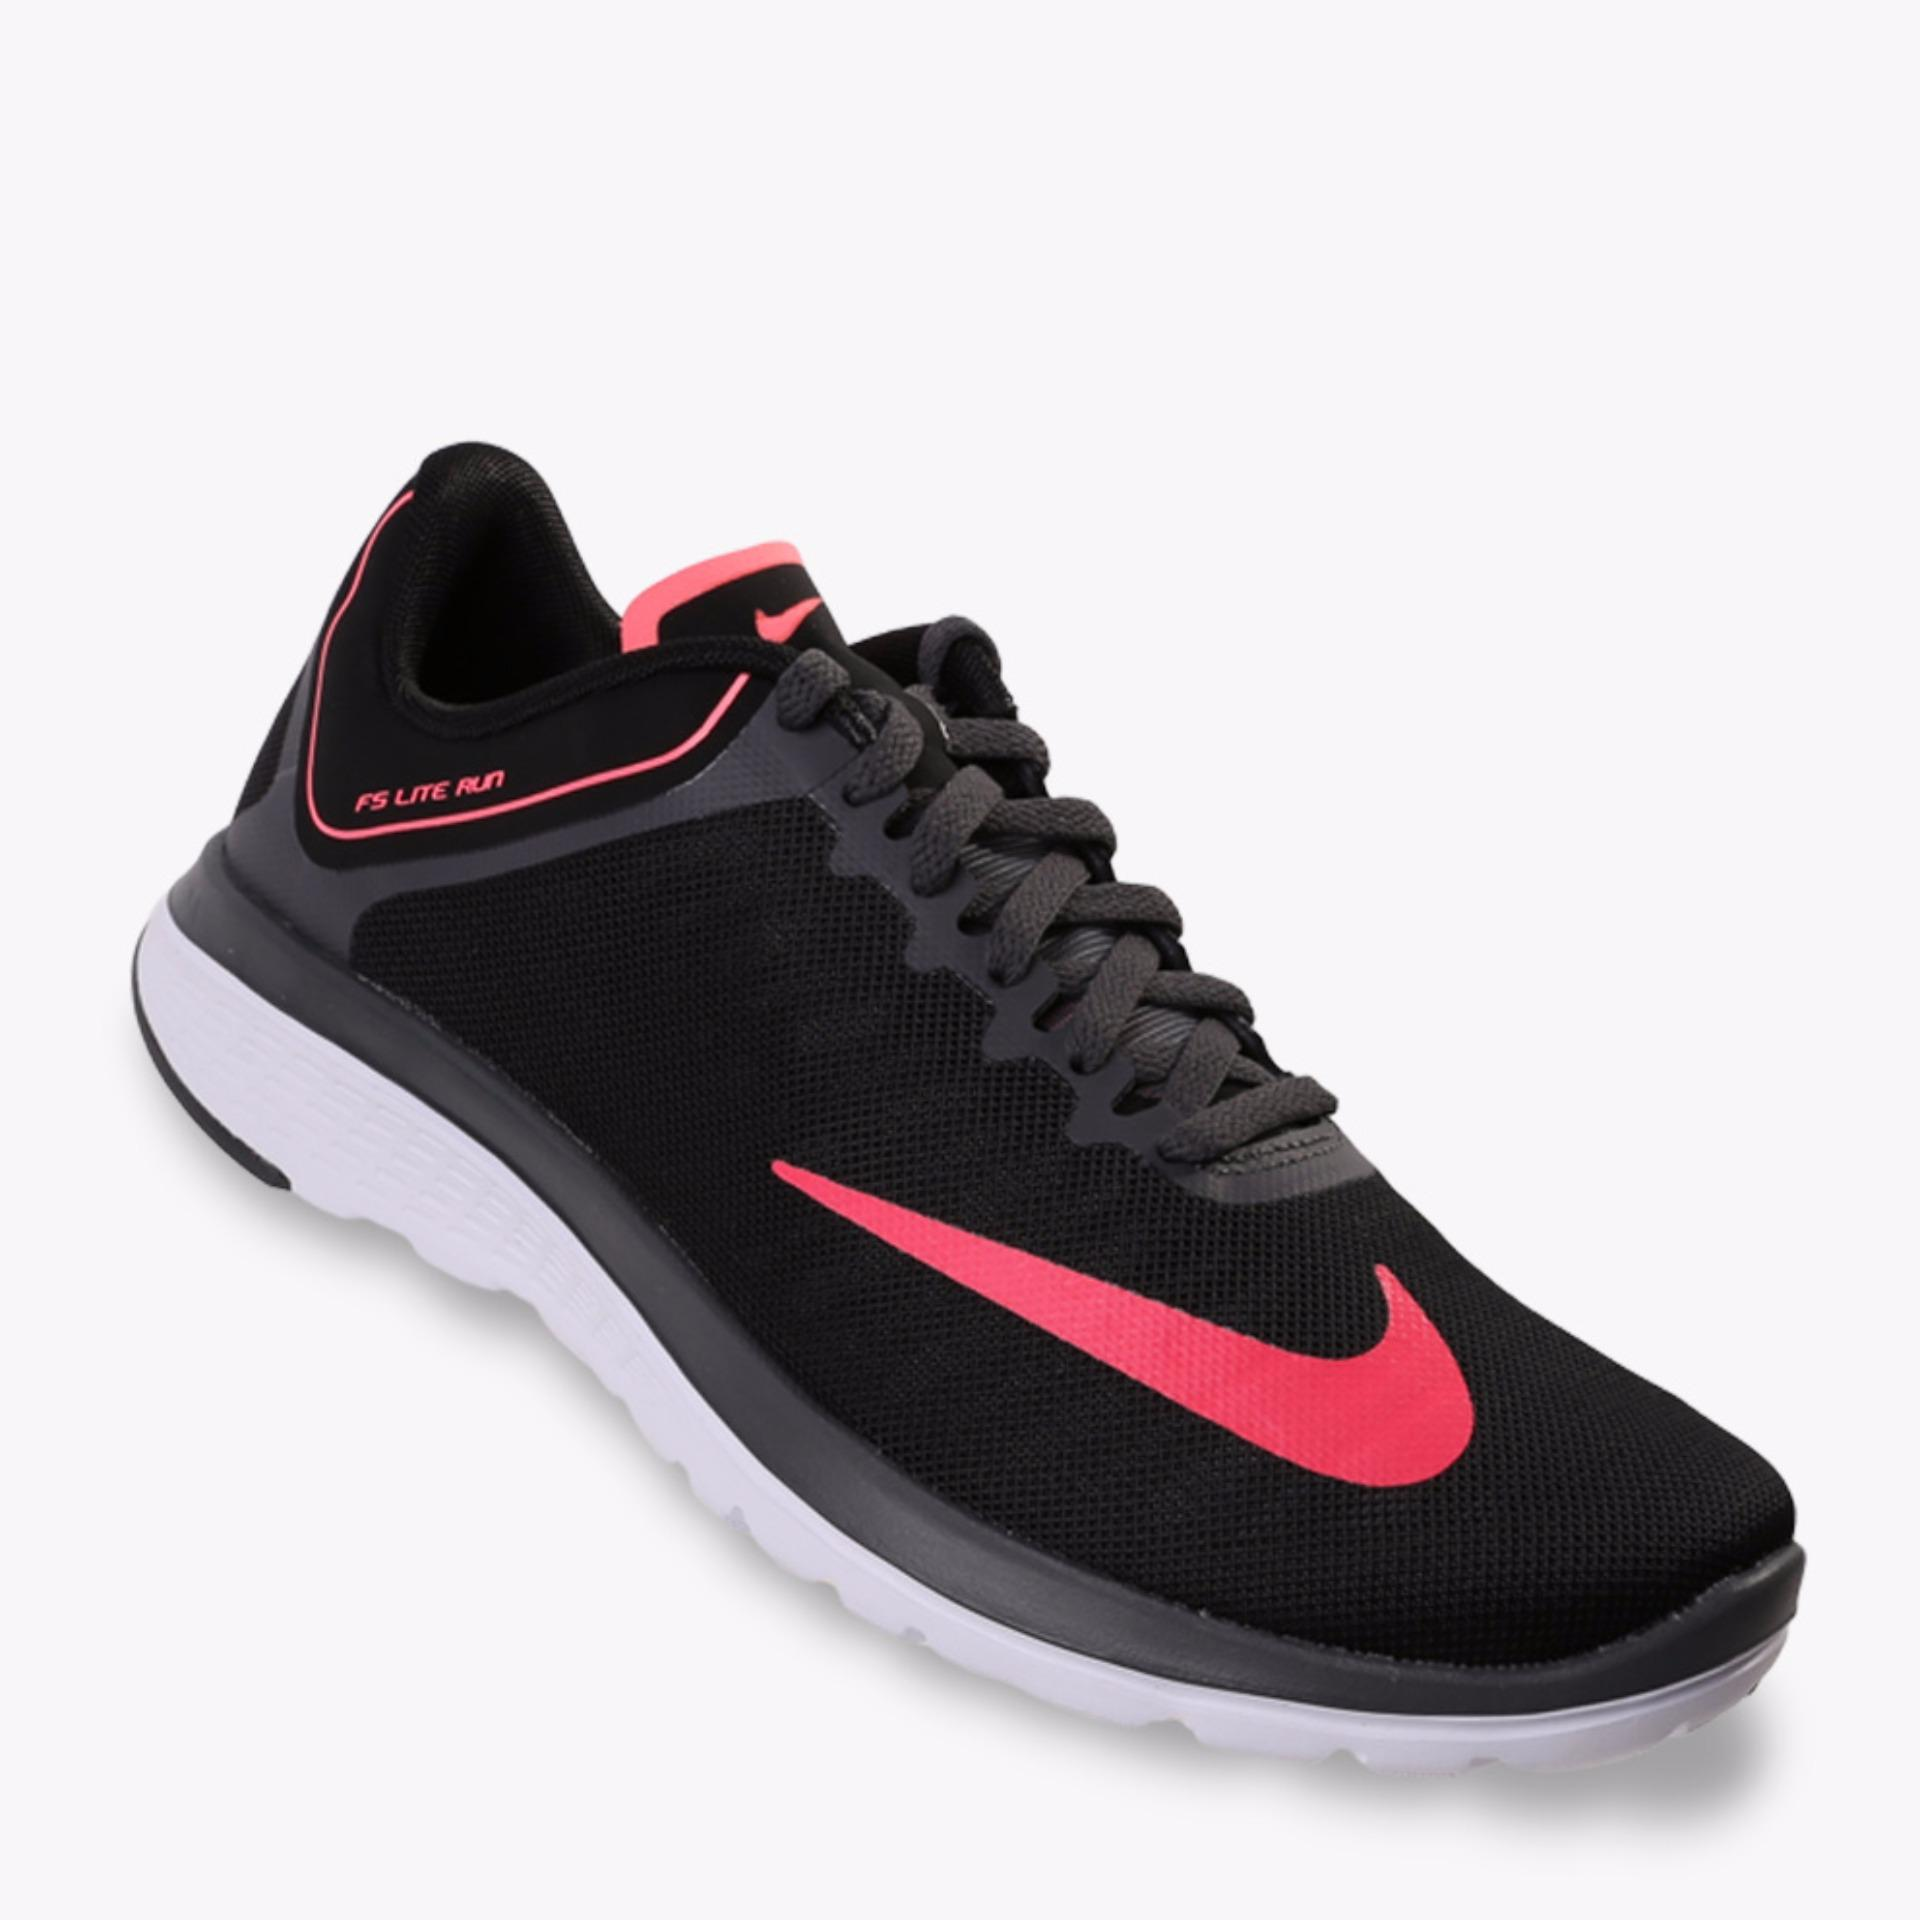 Harga Nike Fs Lite Run 4 Women S Running Shoes Hitam Termurah